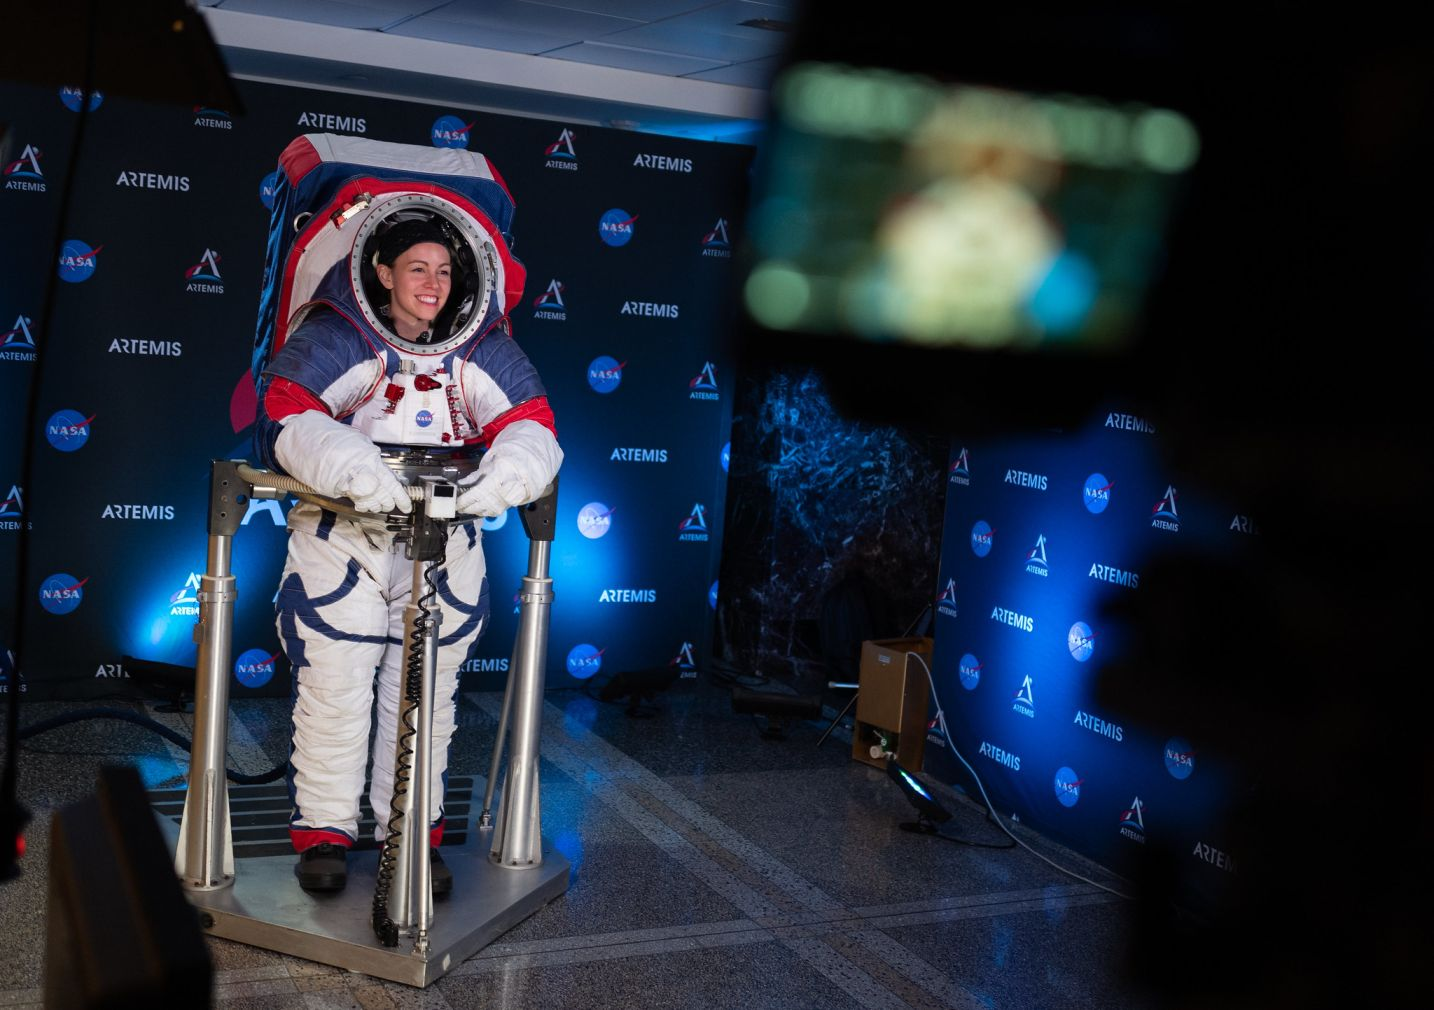 An image of an astronaut wearing a red, white, and blue spacesuit designed to be worn by astronauts exploring the lunar surface.